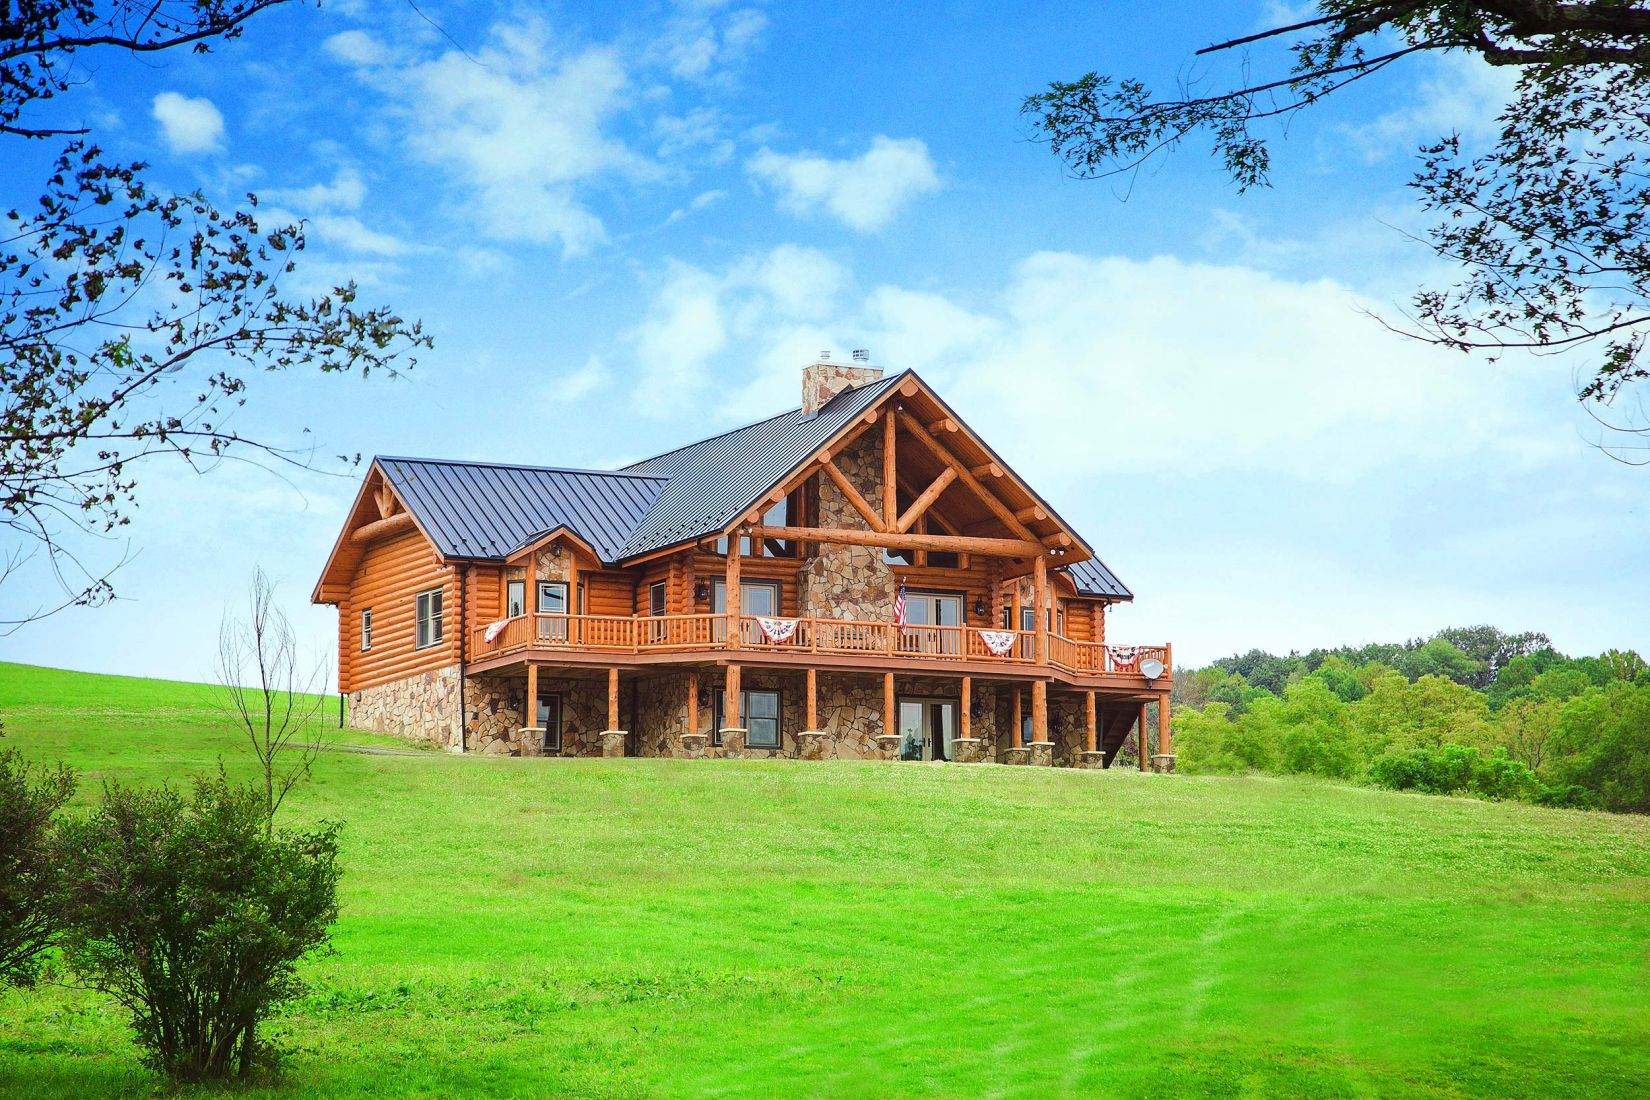 Swedish Cope Log Home with Black Metal Roof and Stone Covered Foundation